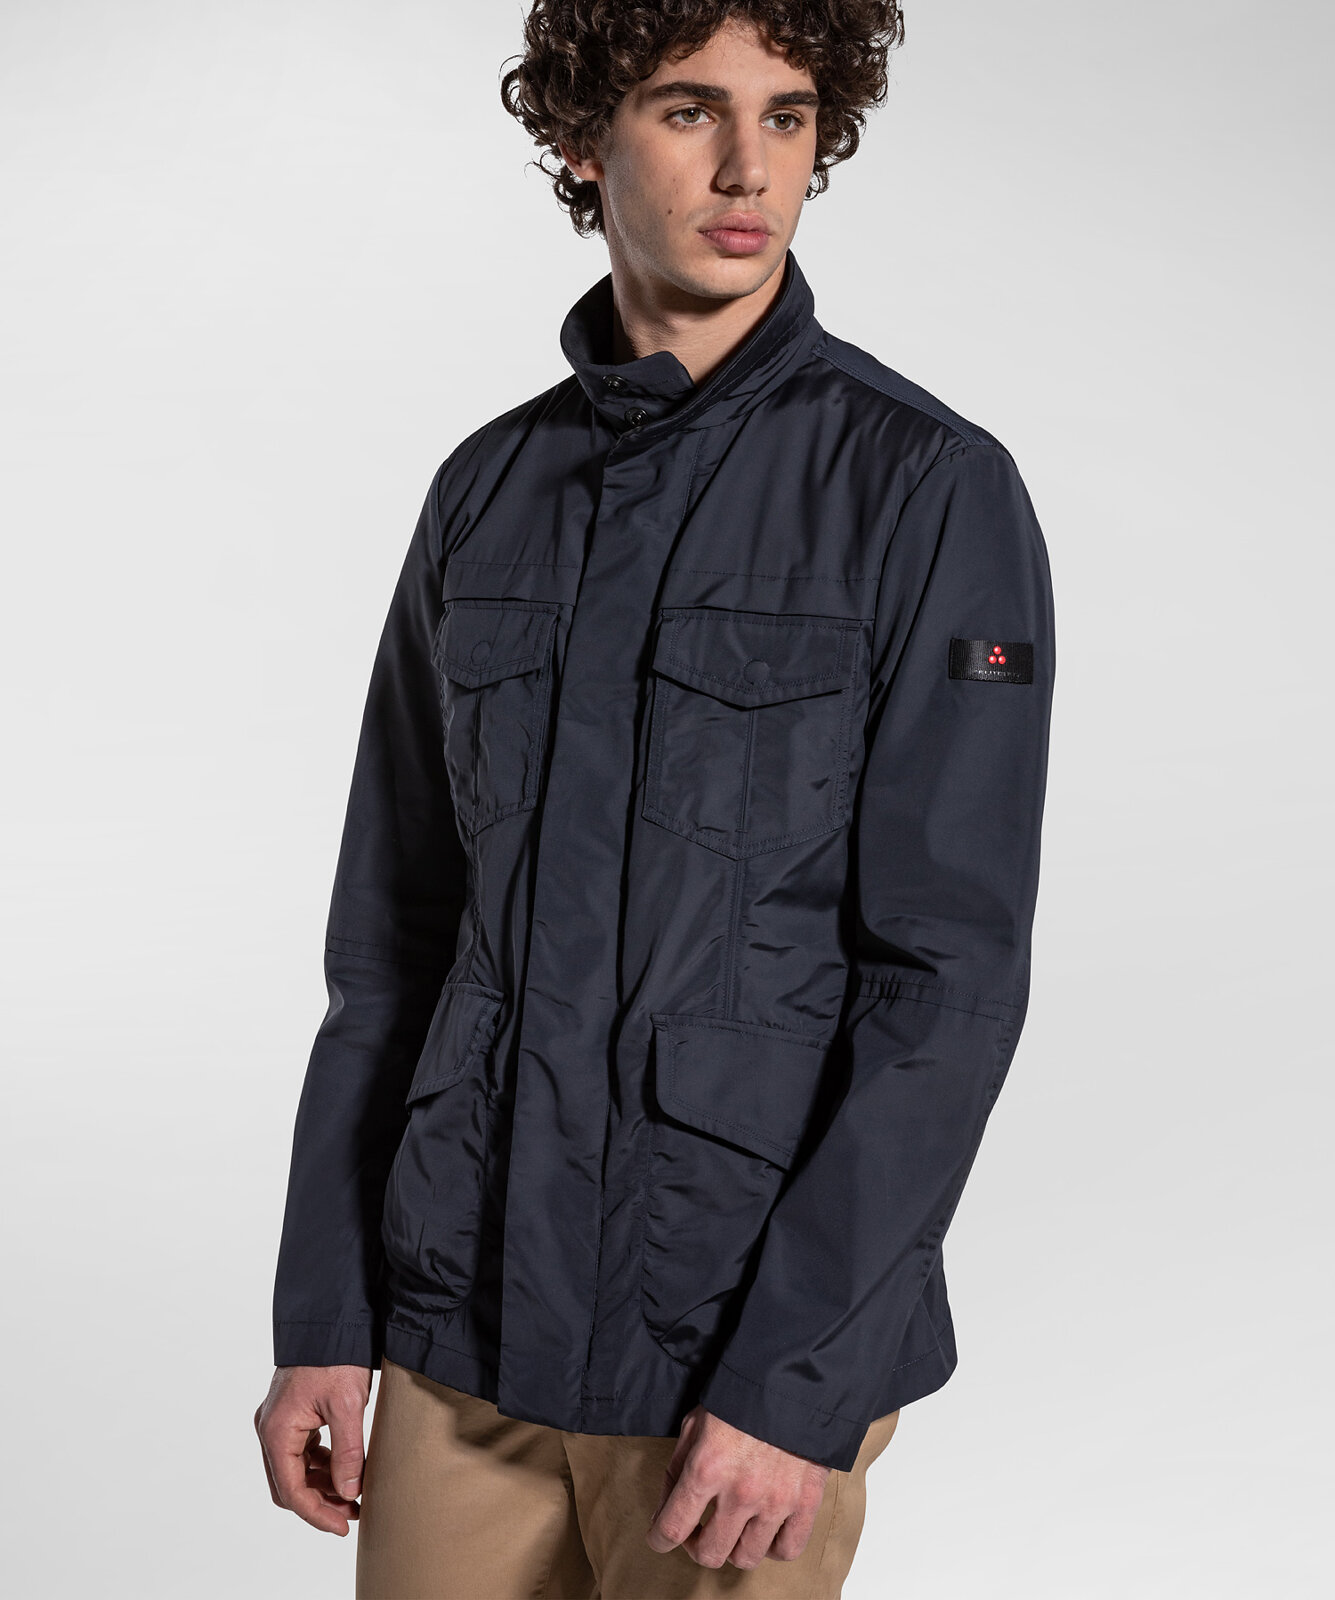 Field Jacket Quattro Tasche Water Repellent - Peuterey